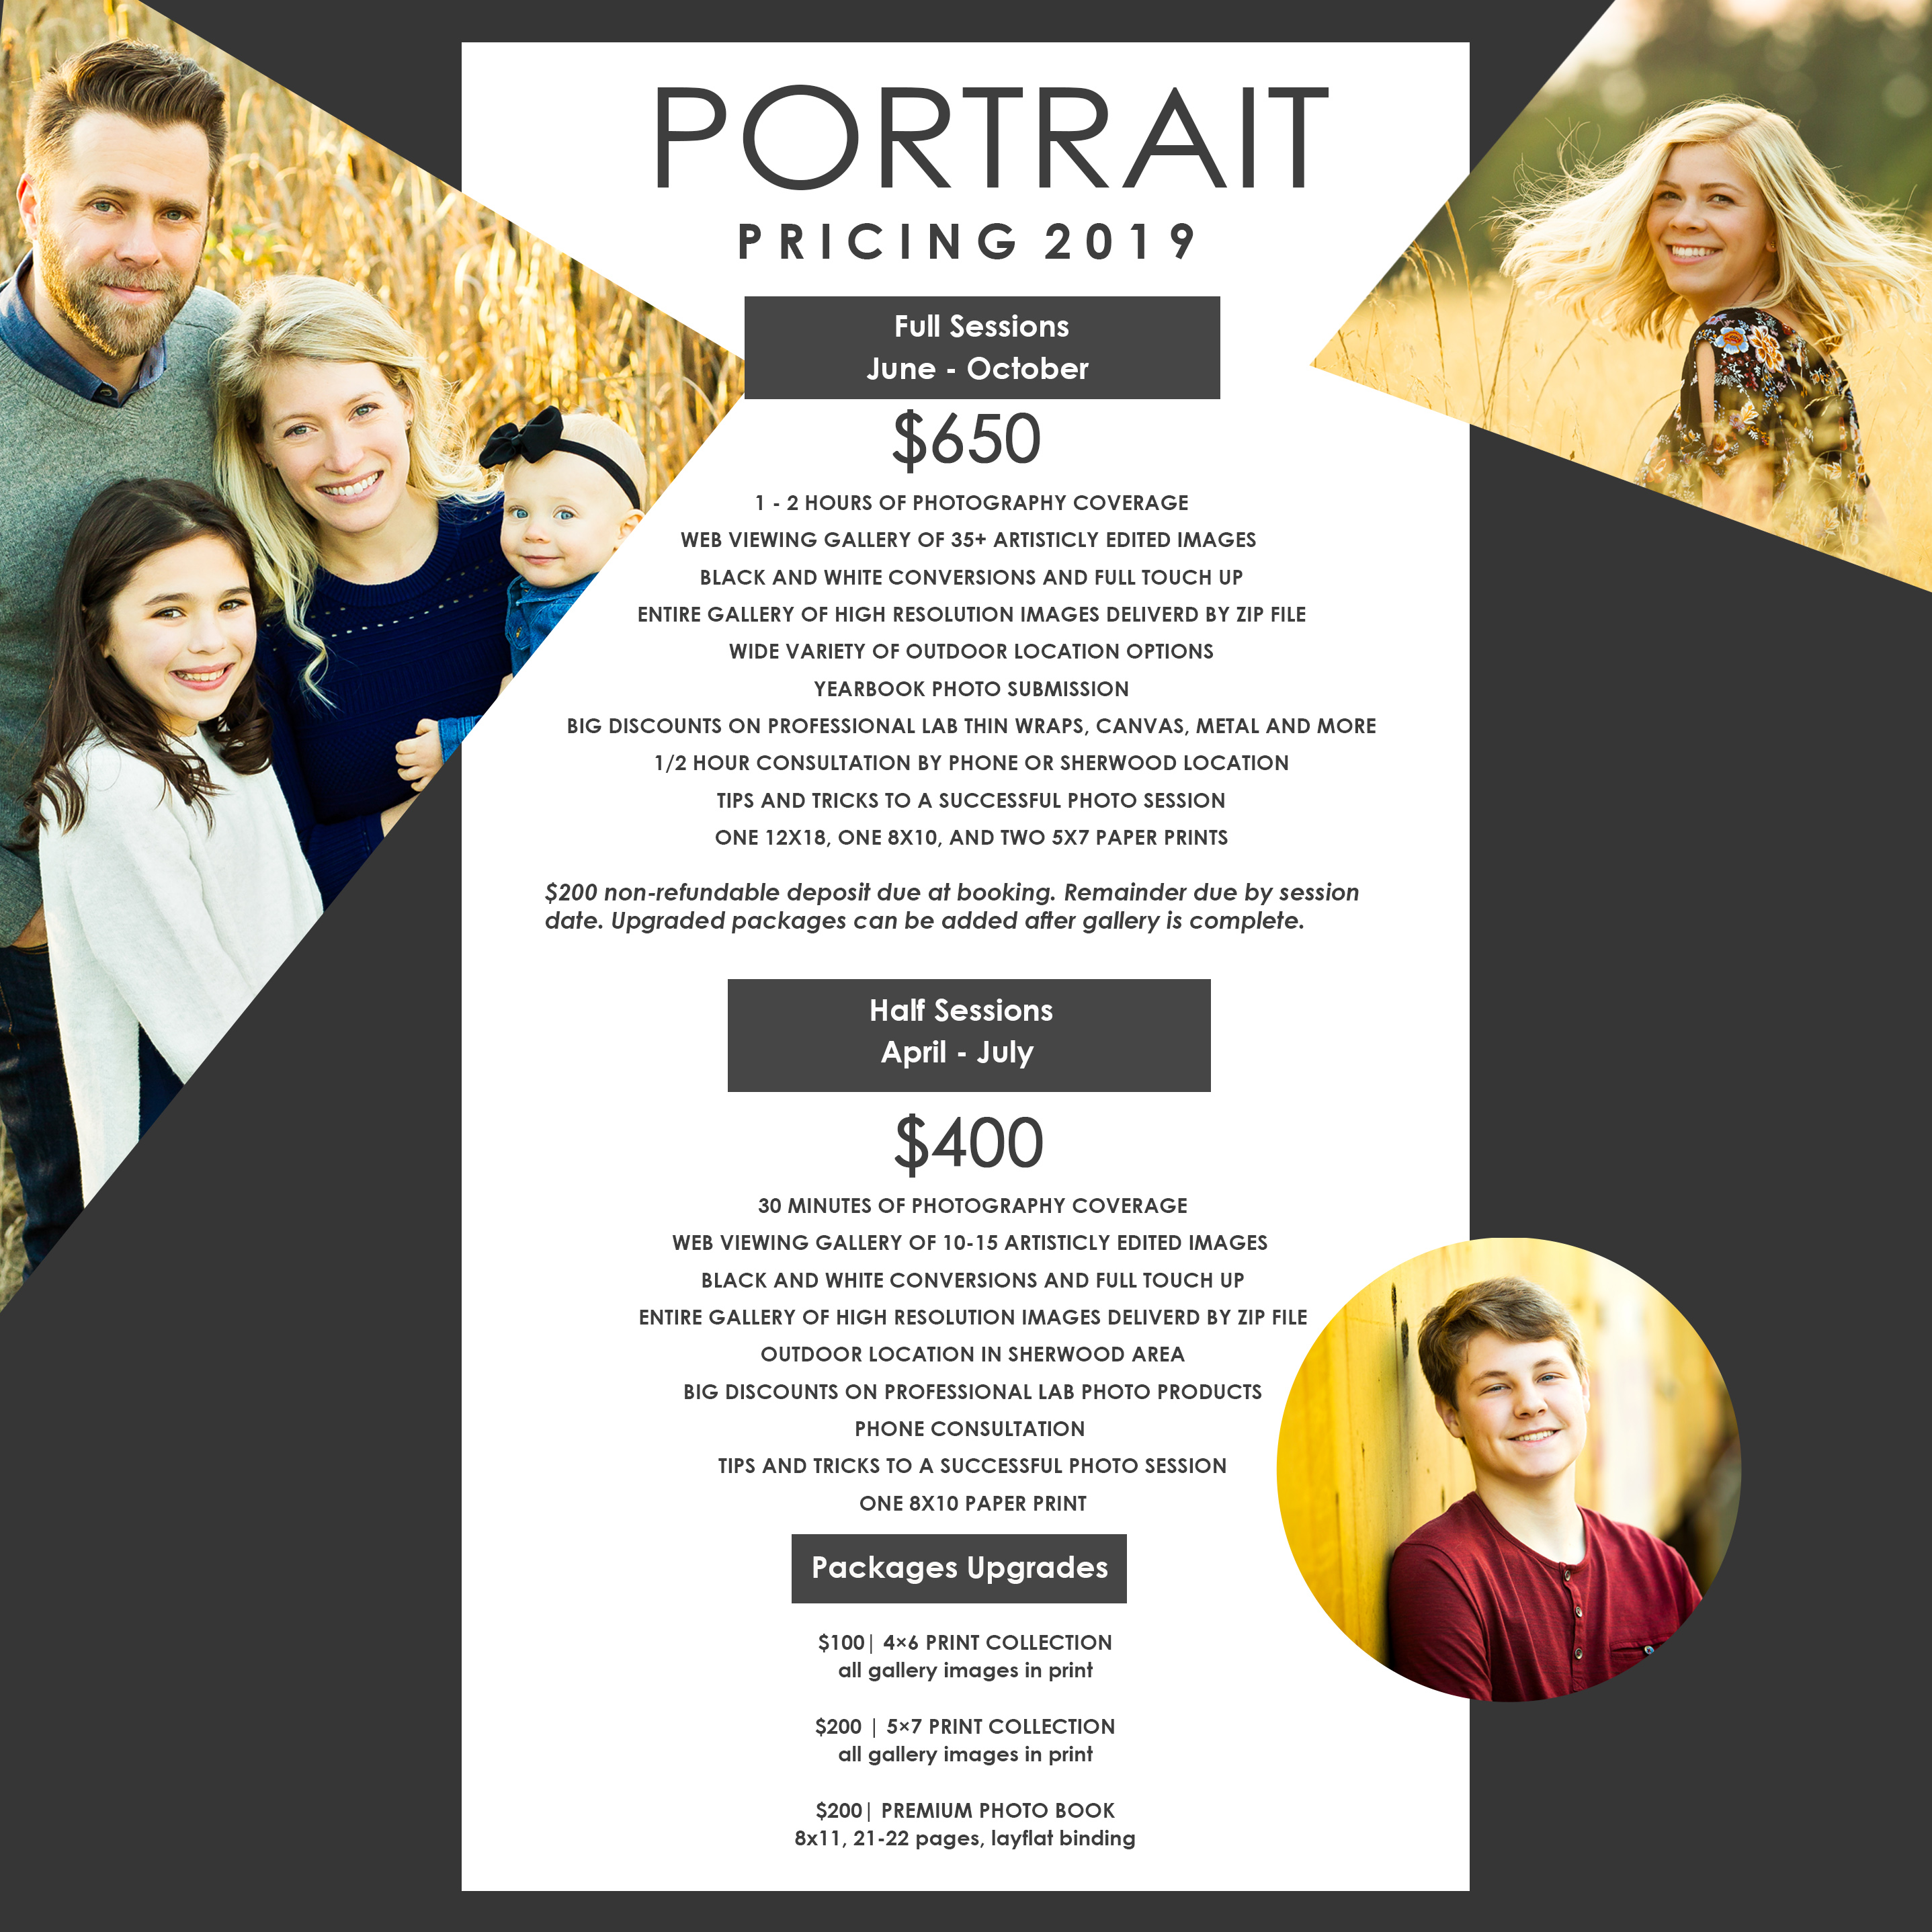 AWP standard portrait pricing for 2019